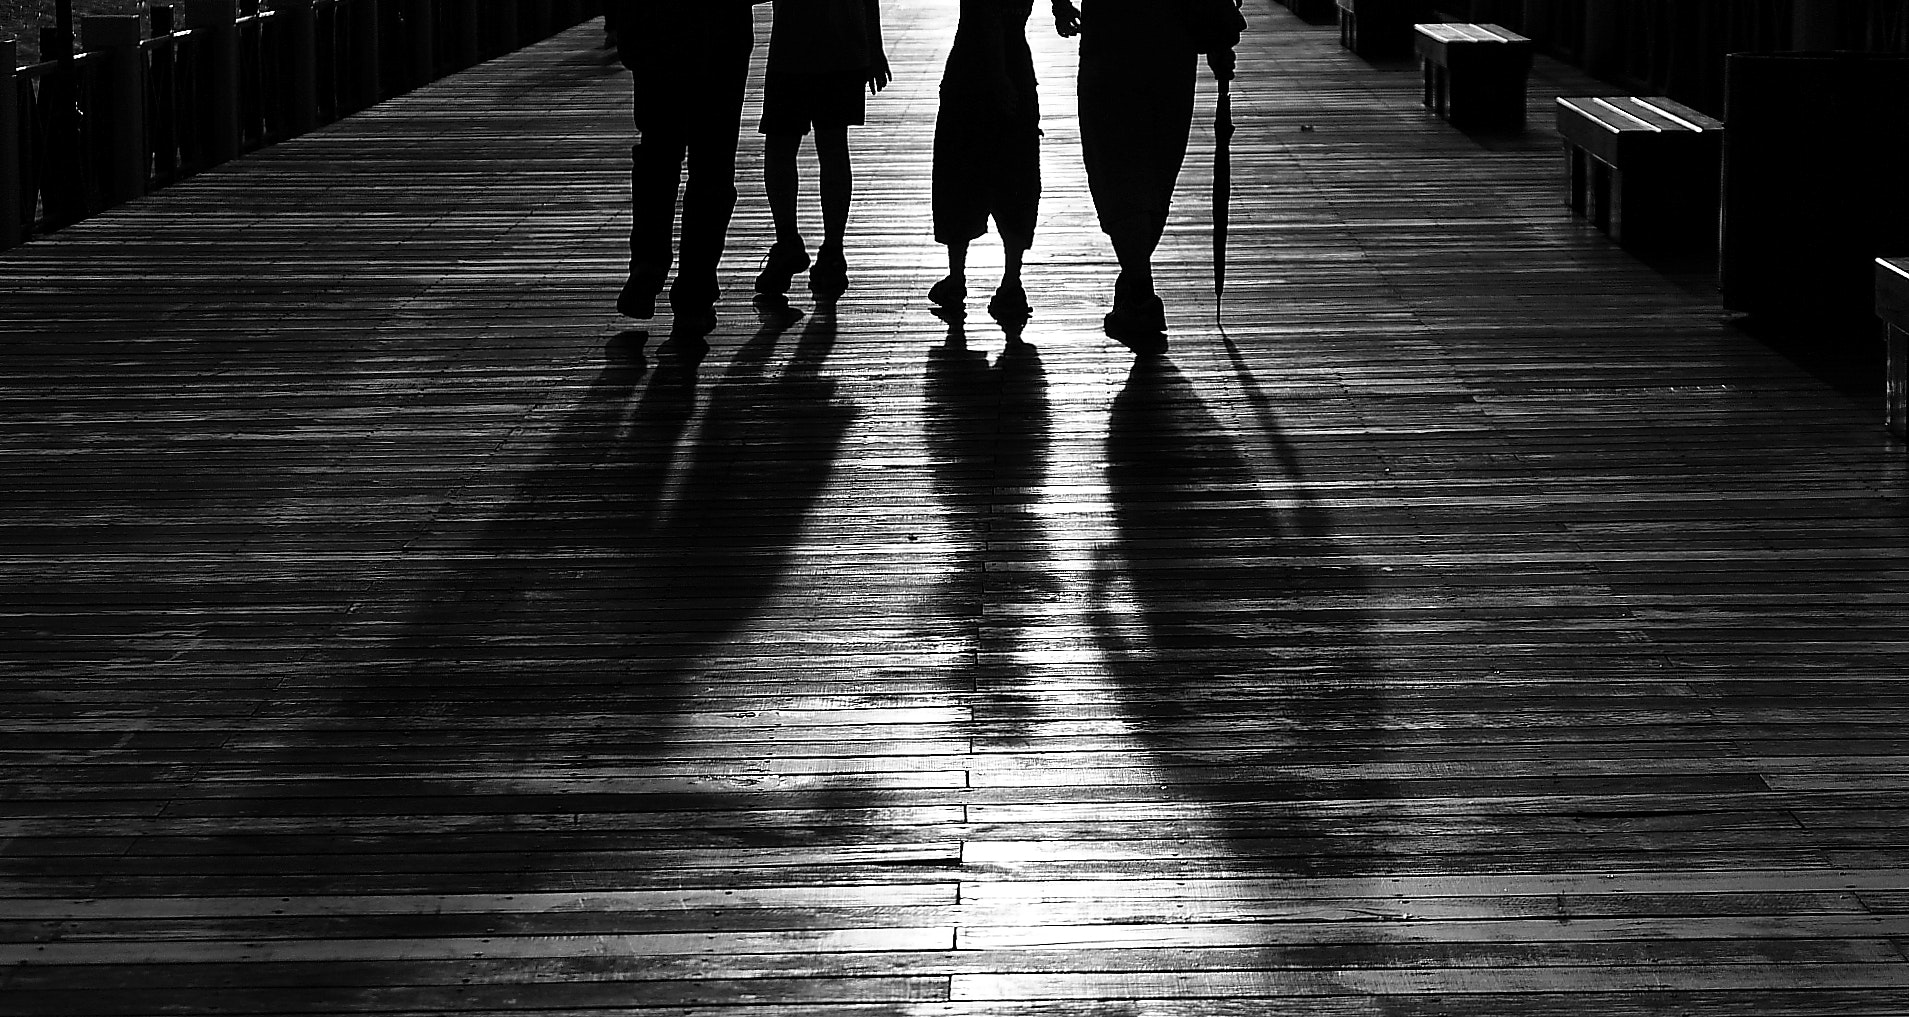 Silhouette of 4 Person Walking, Black-and-white, Friends, Group, Light, HQ Photo